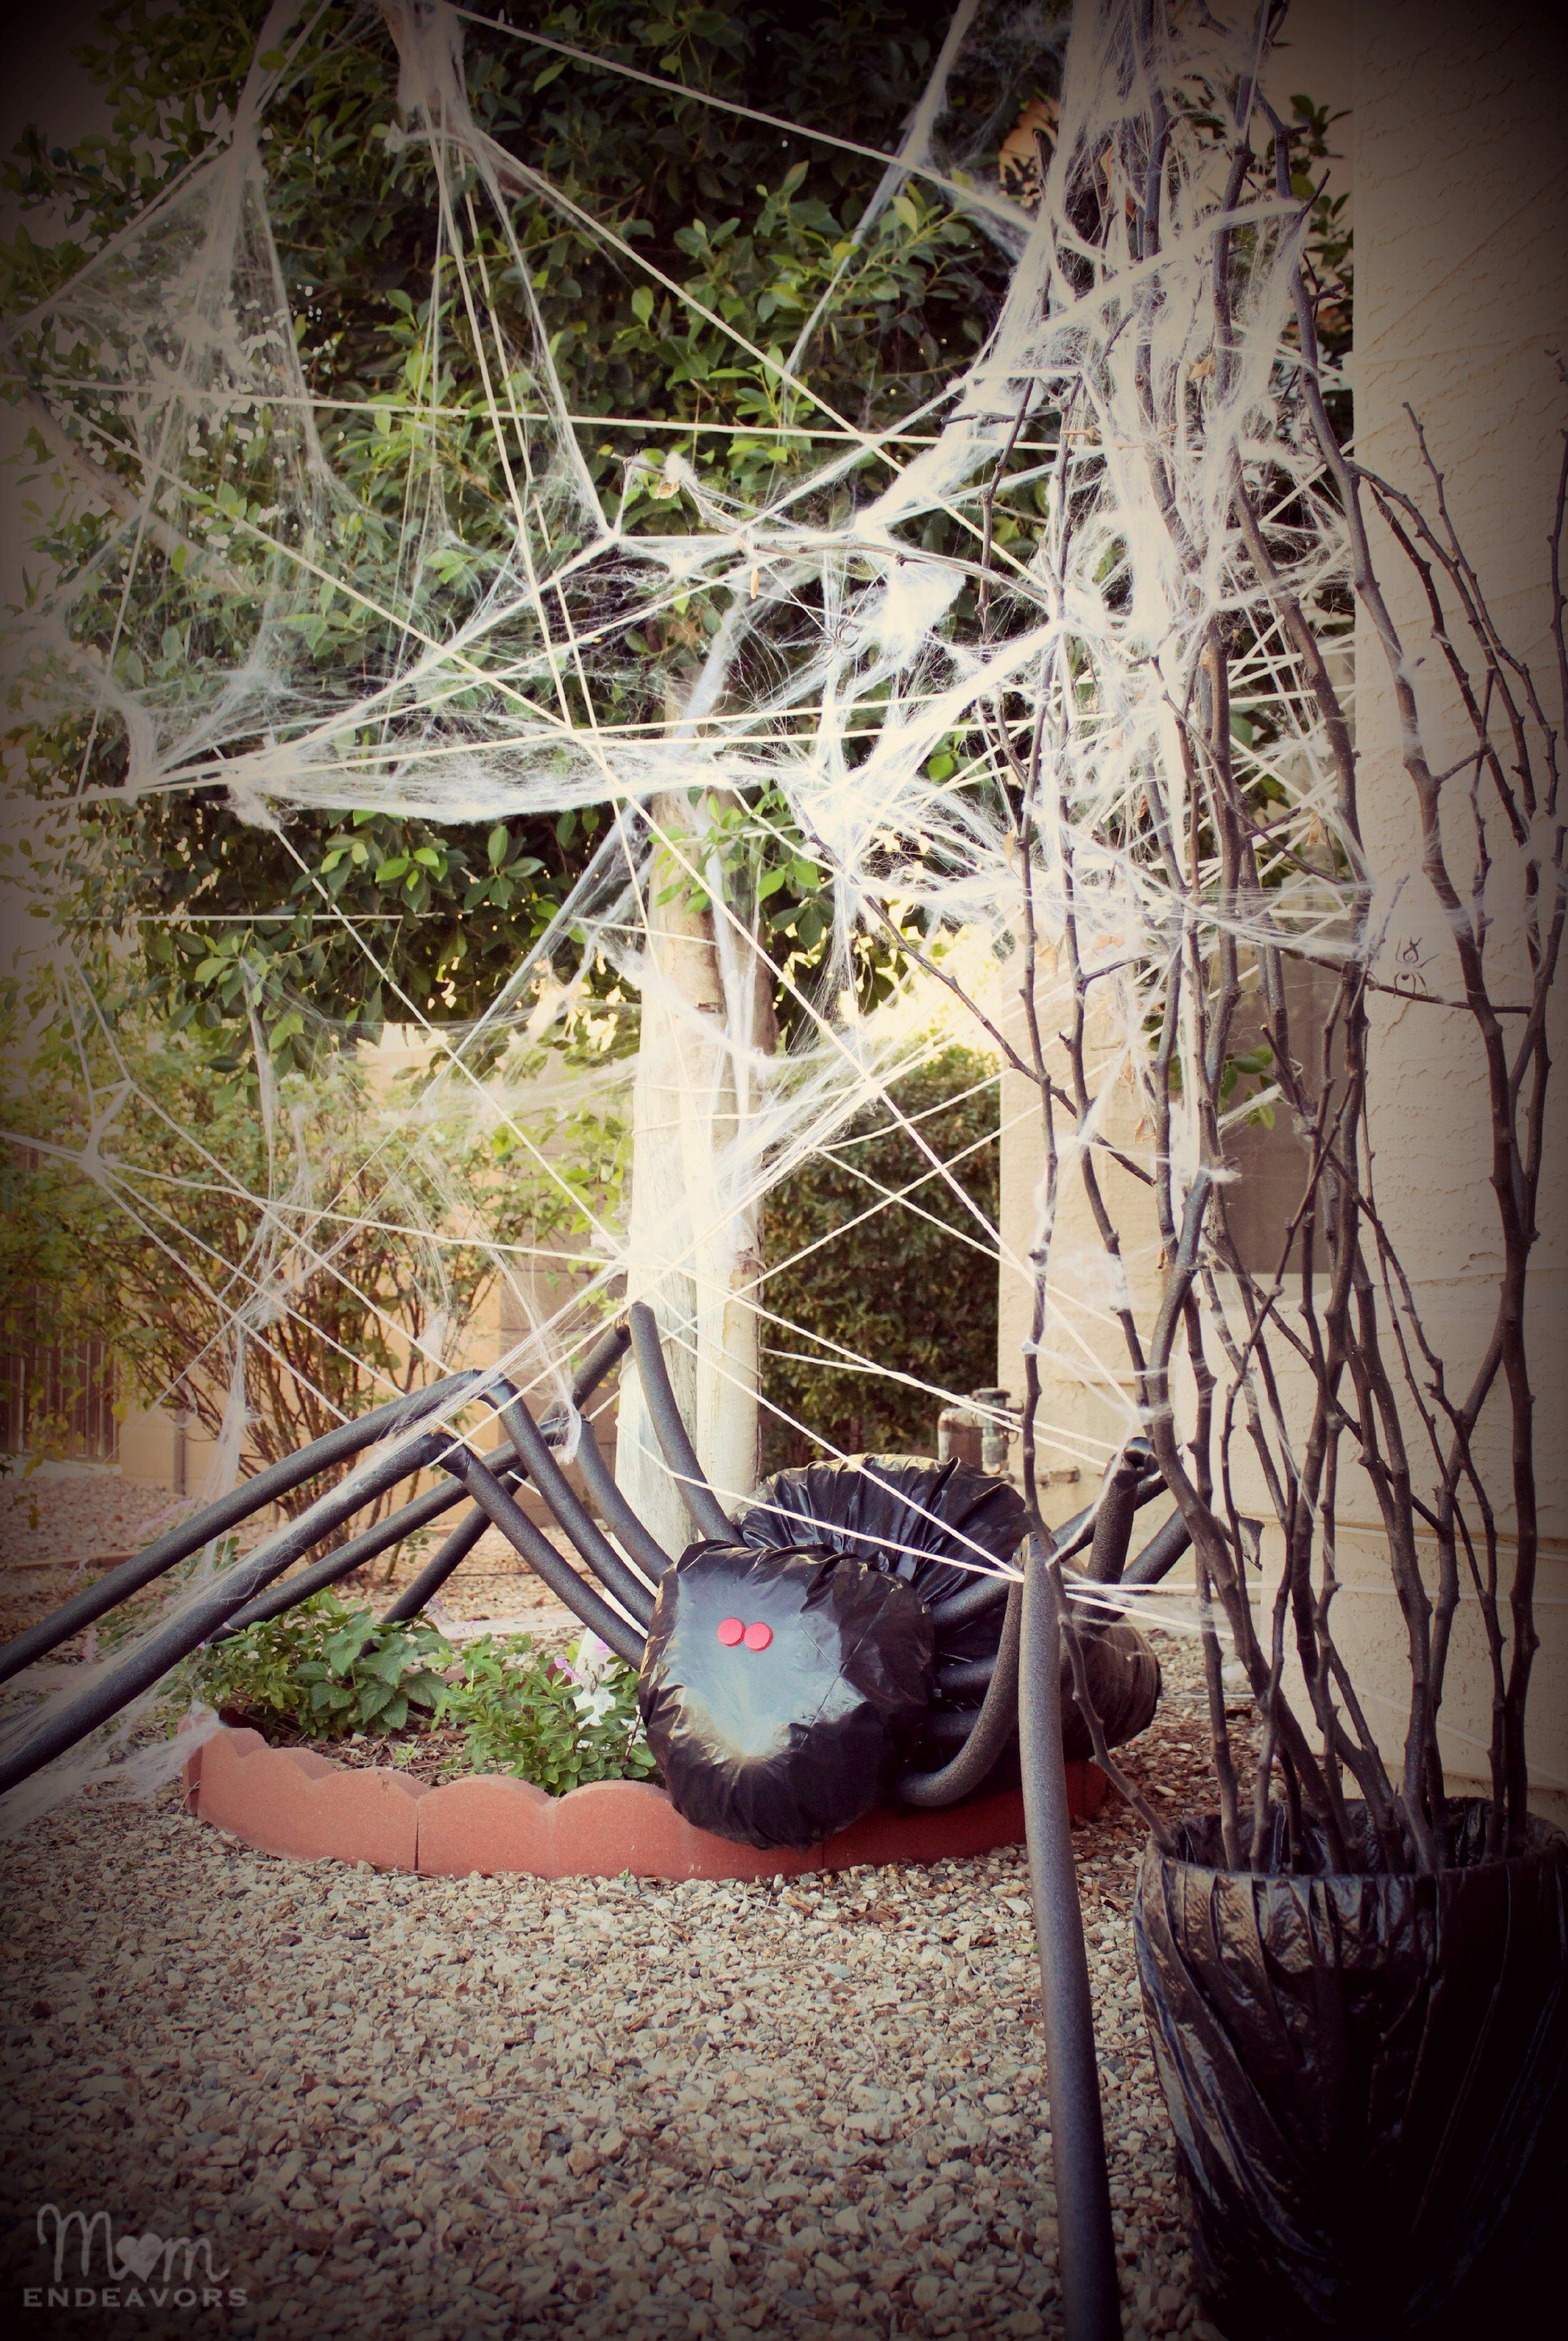 DIY Halloween Front Yard Decor - Giant Spider in Spiderweb via - Halloween Yard Decorations Ideas